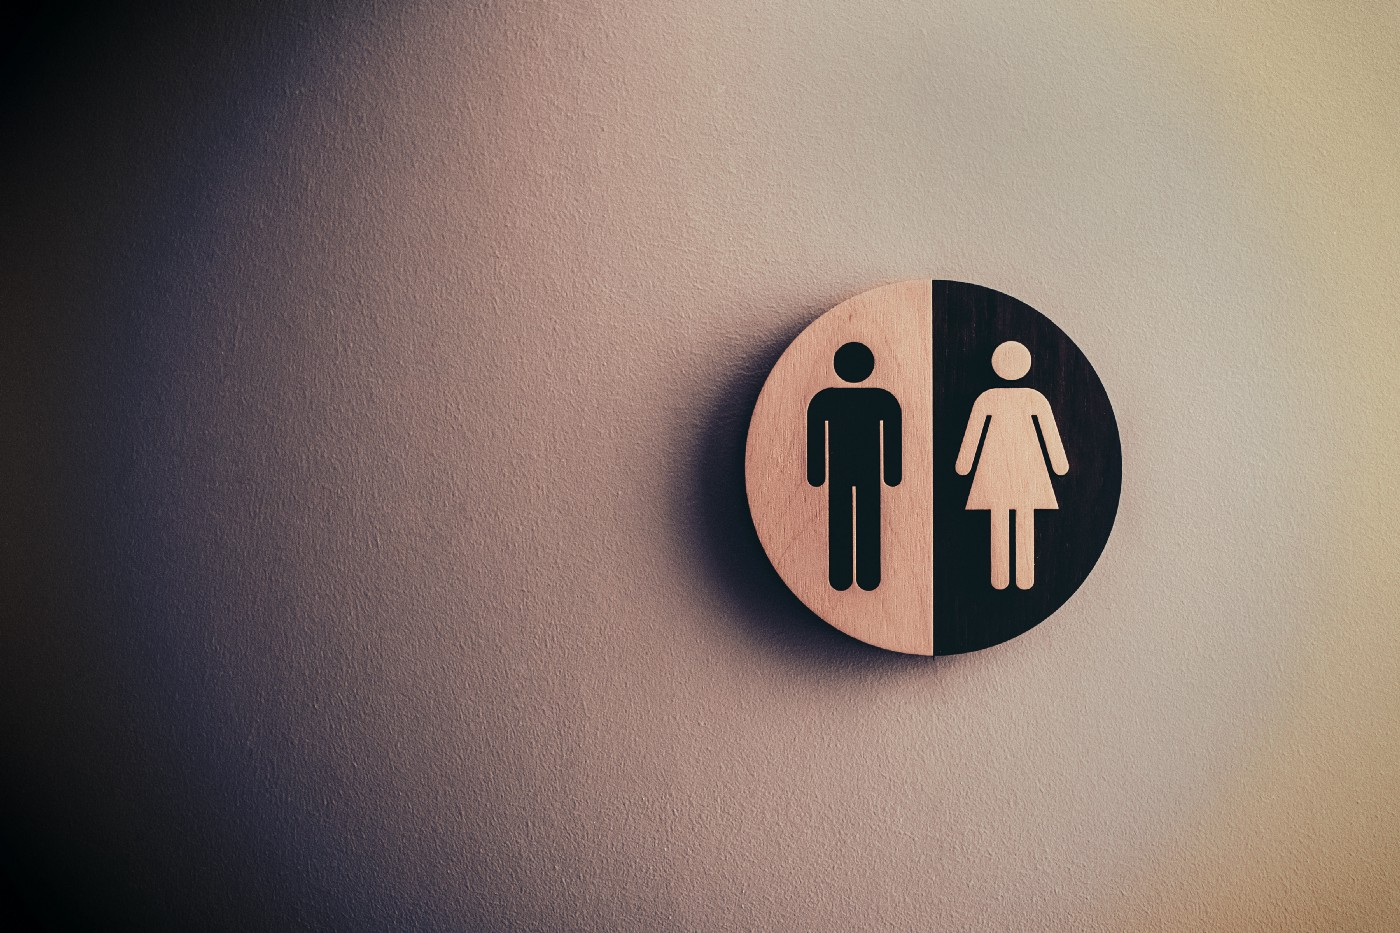 Image of man and woman symbol, the man is black on light background, the woman is light on black background